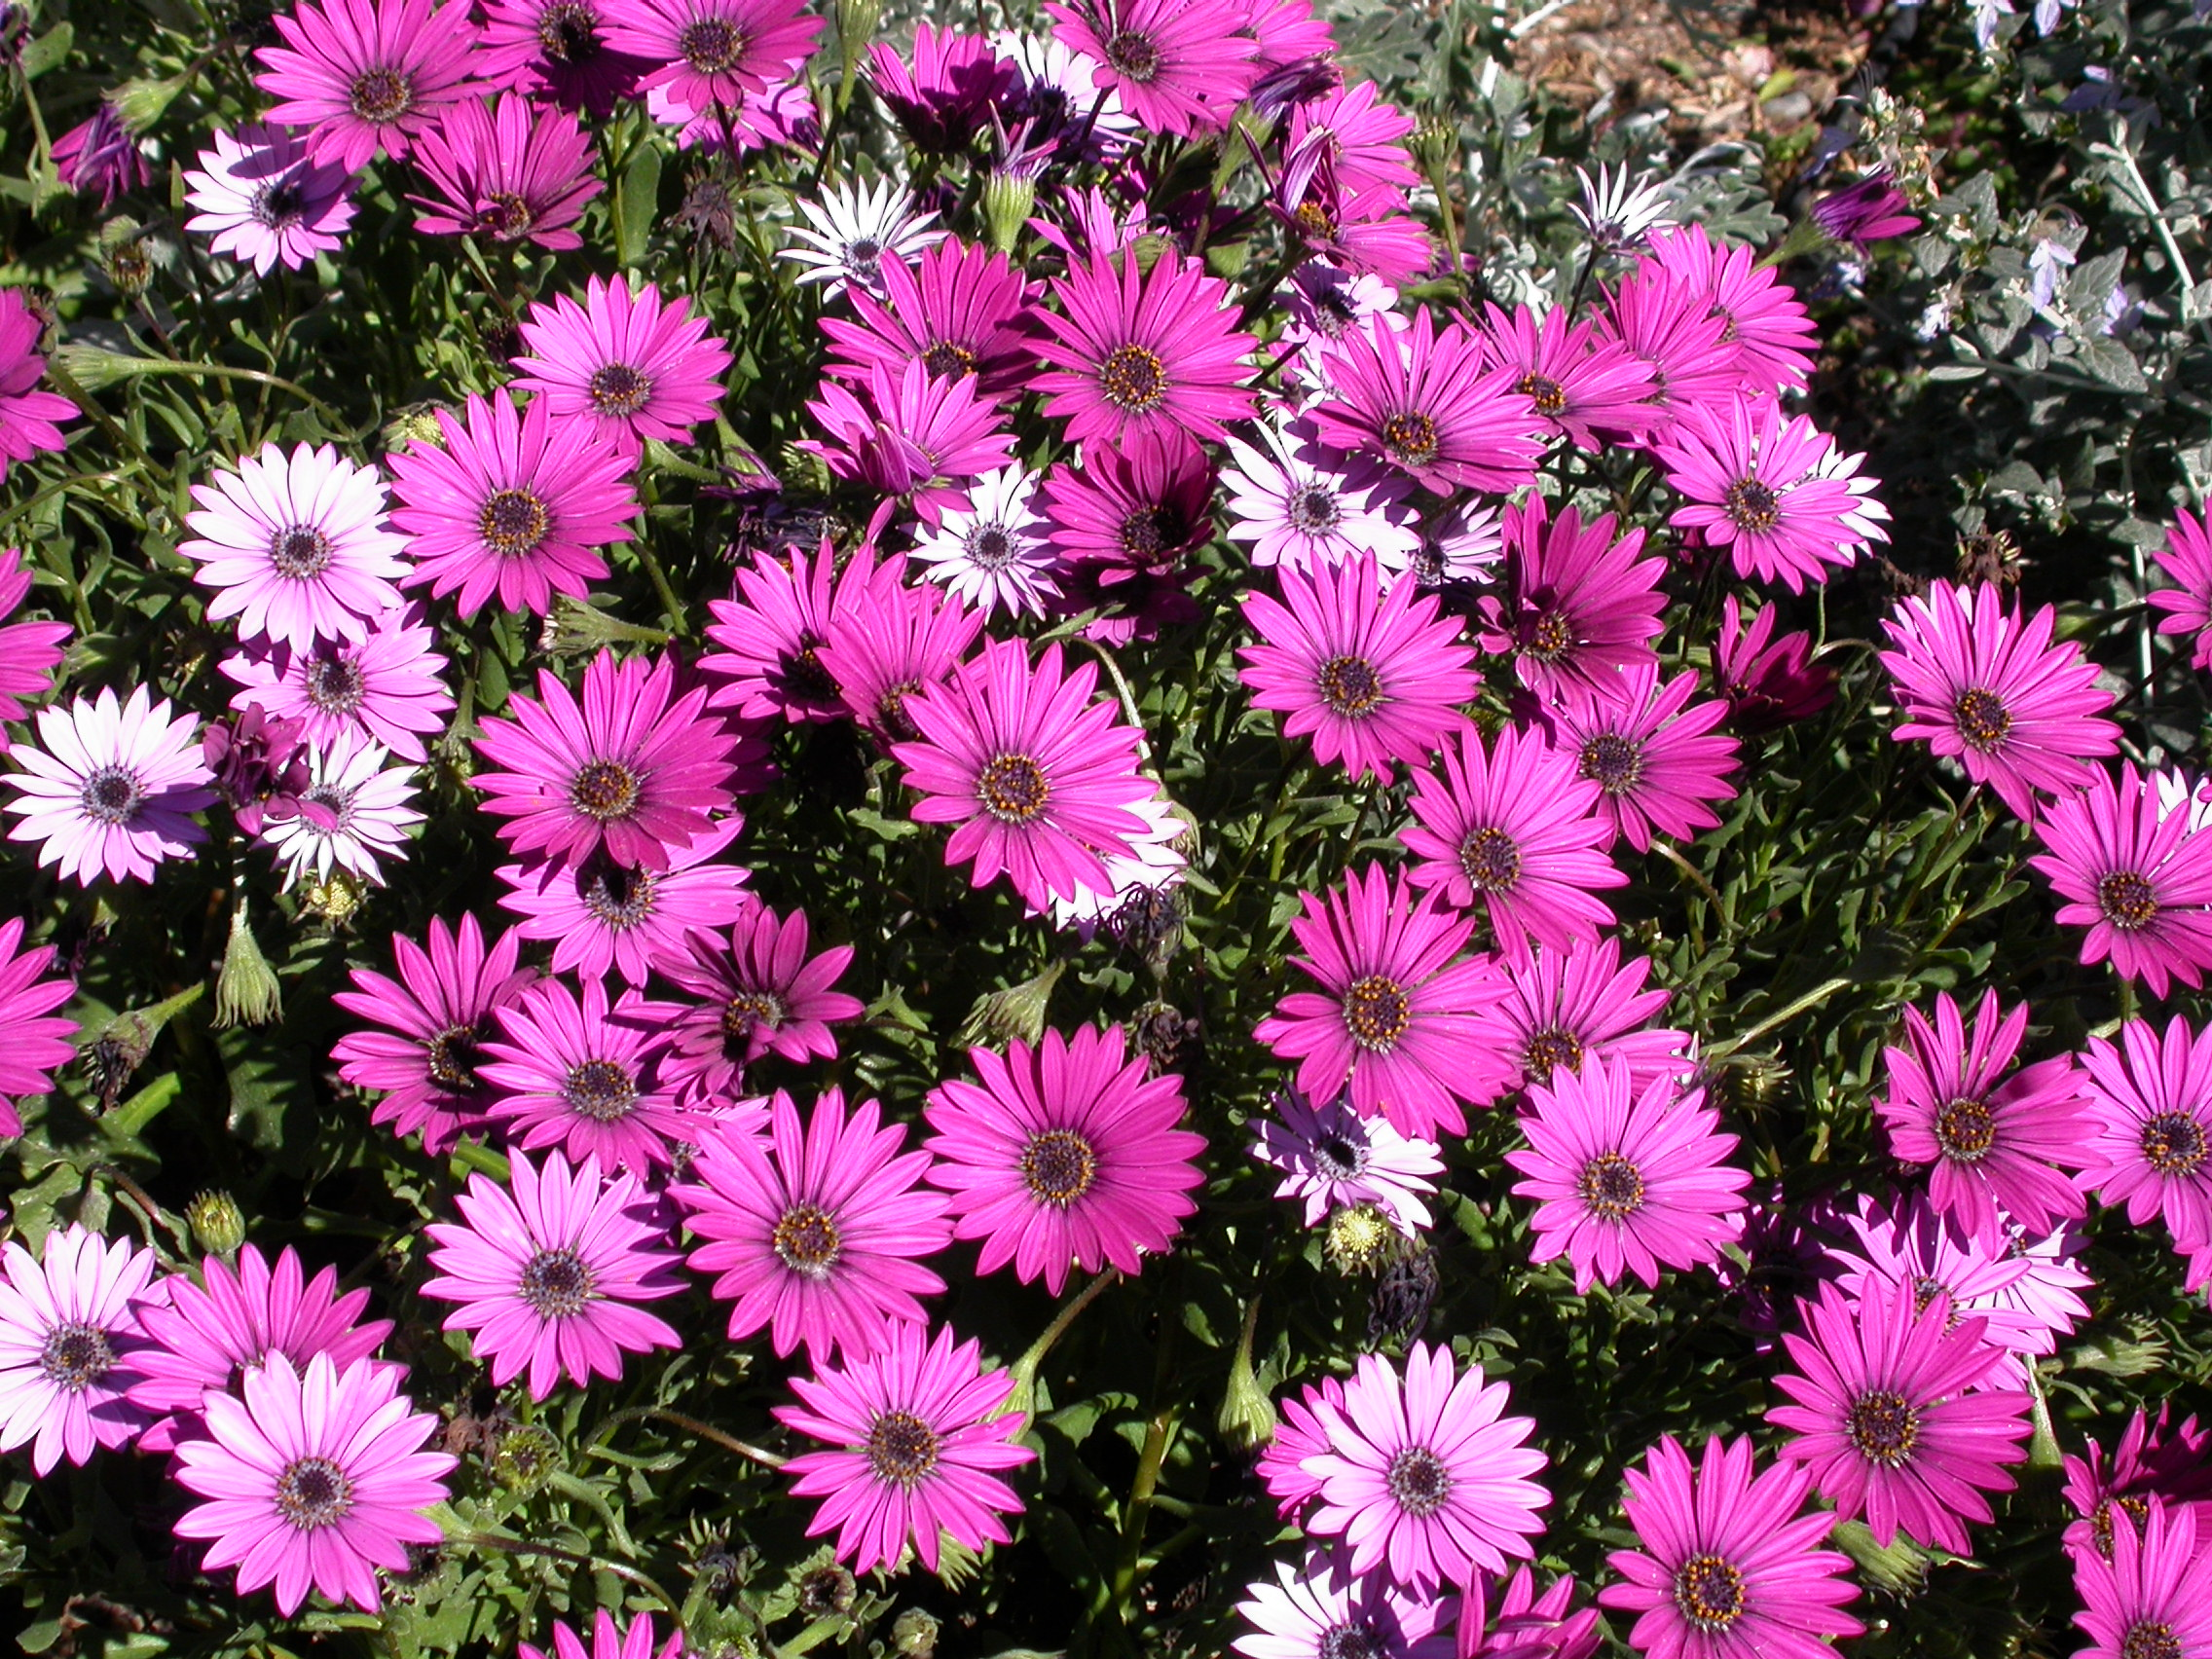 Jobs for March/ April, Transplanting Osteospermums and taking cuttings